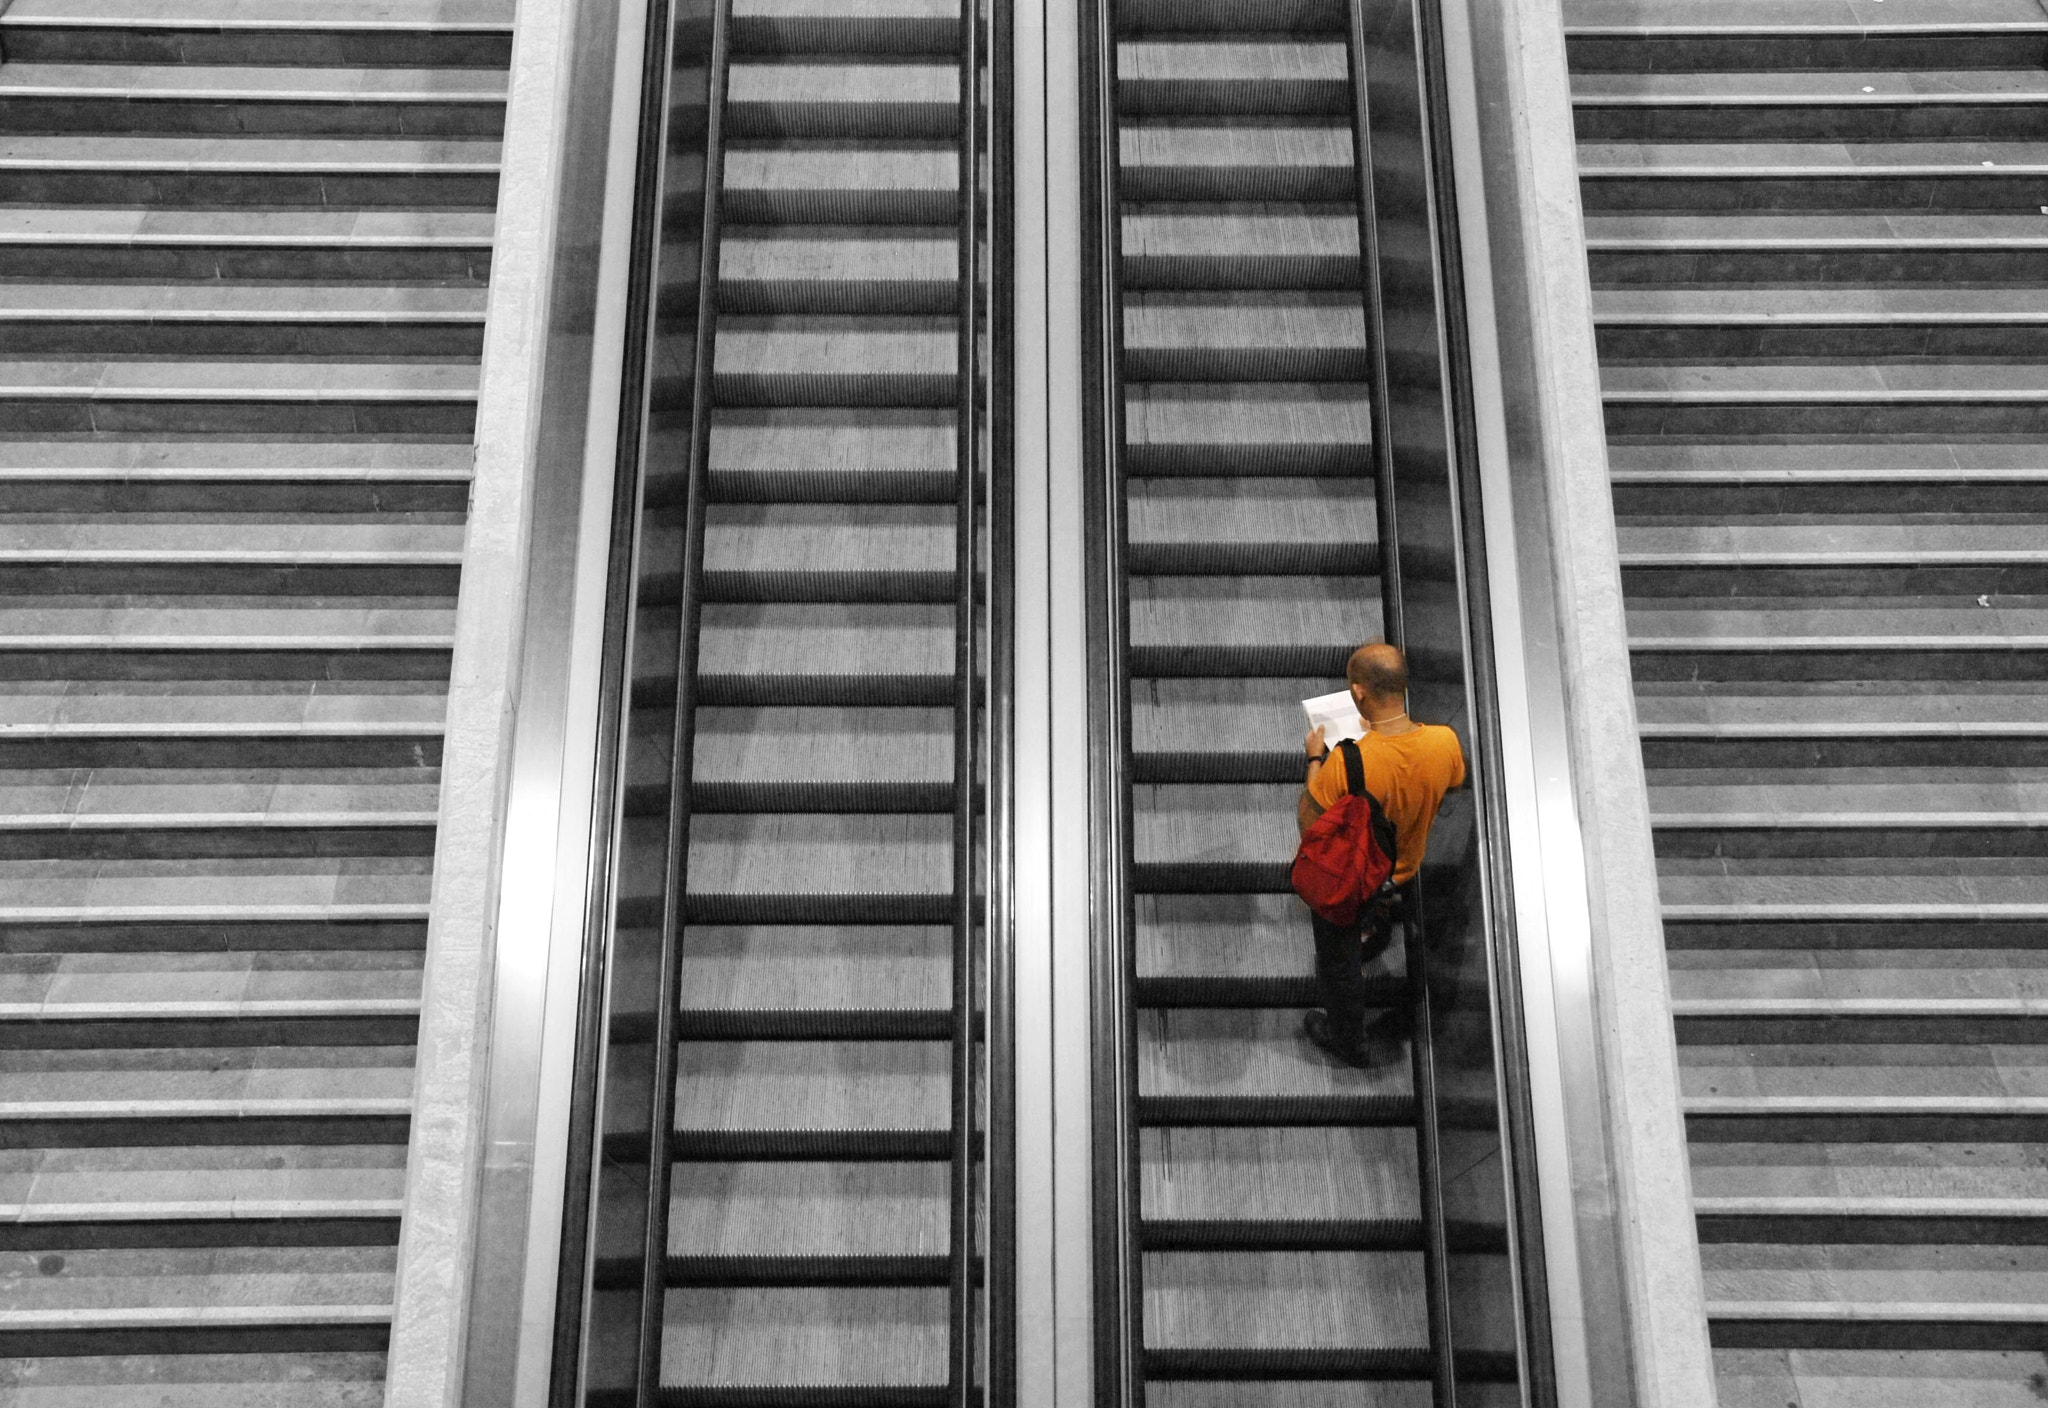 Photograph The Man in Orange by Manolo Toledo on 500px